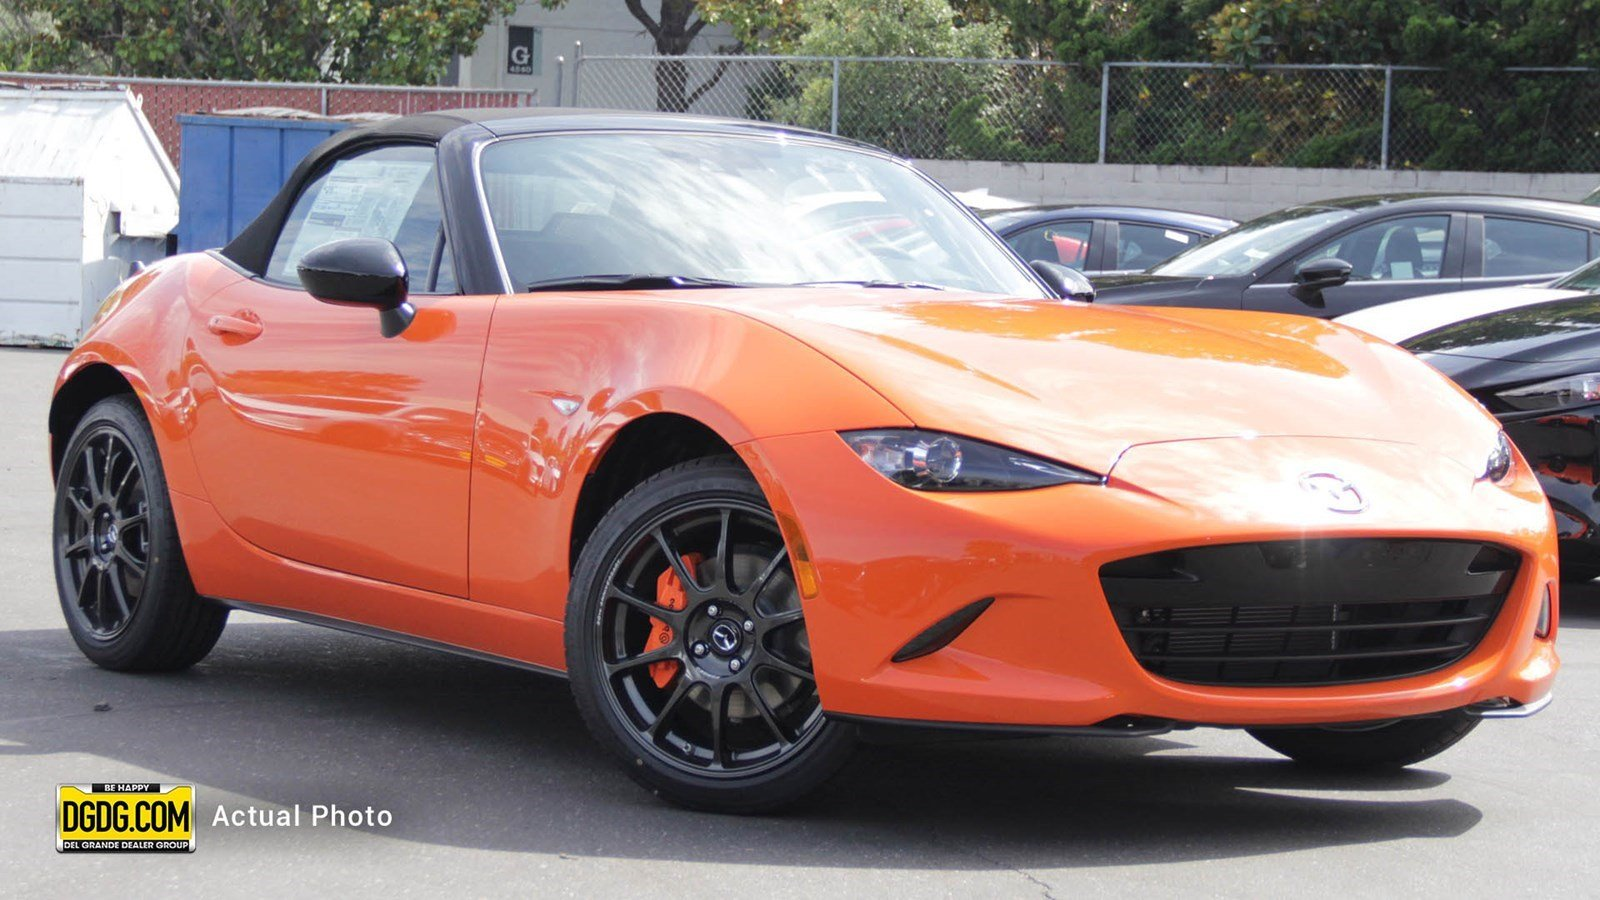 New 2019 Mazda MX-5 Miata 30th Anniversary